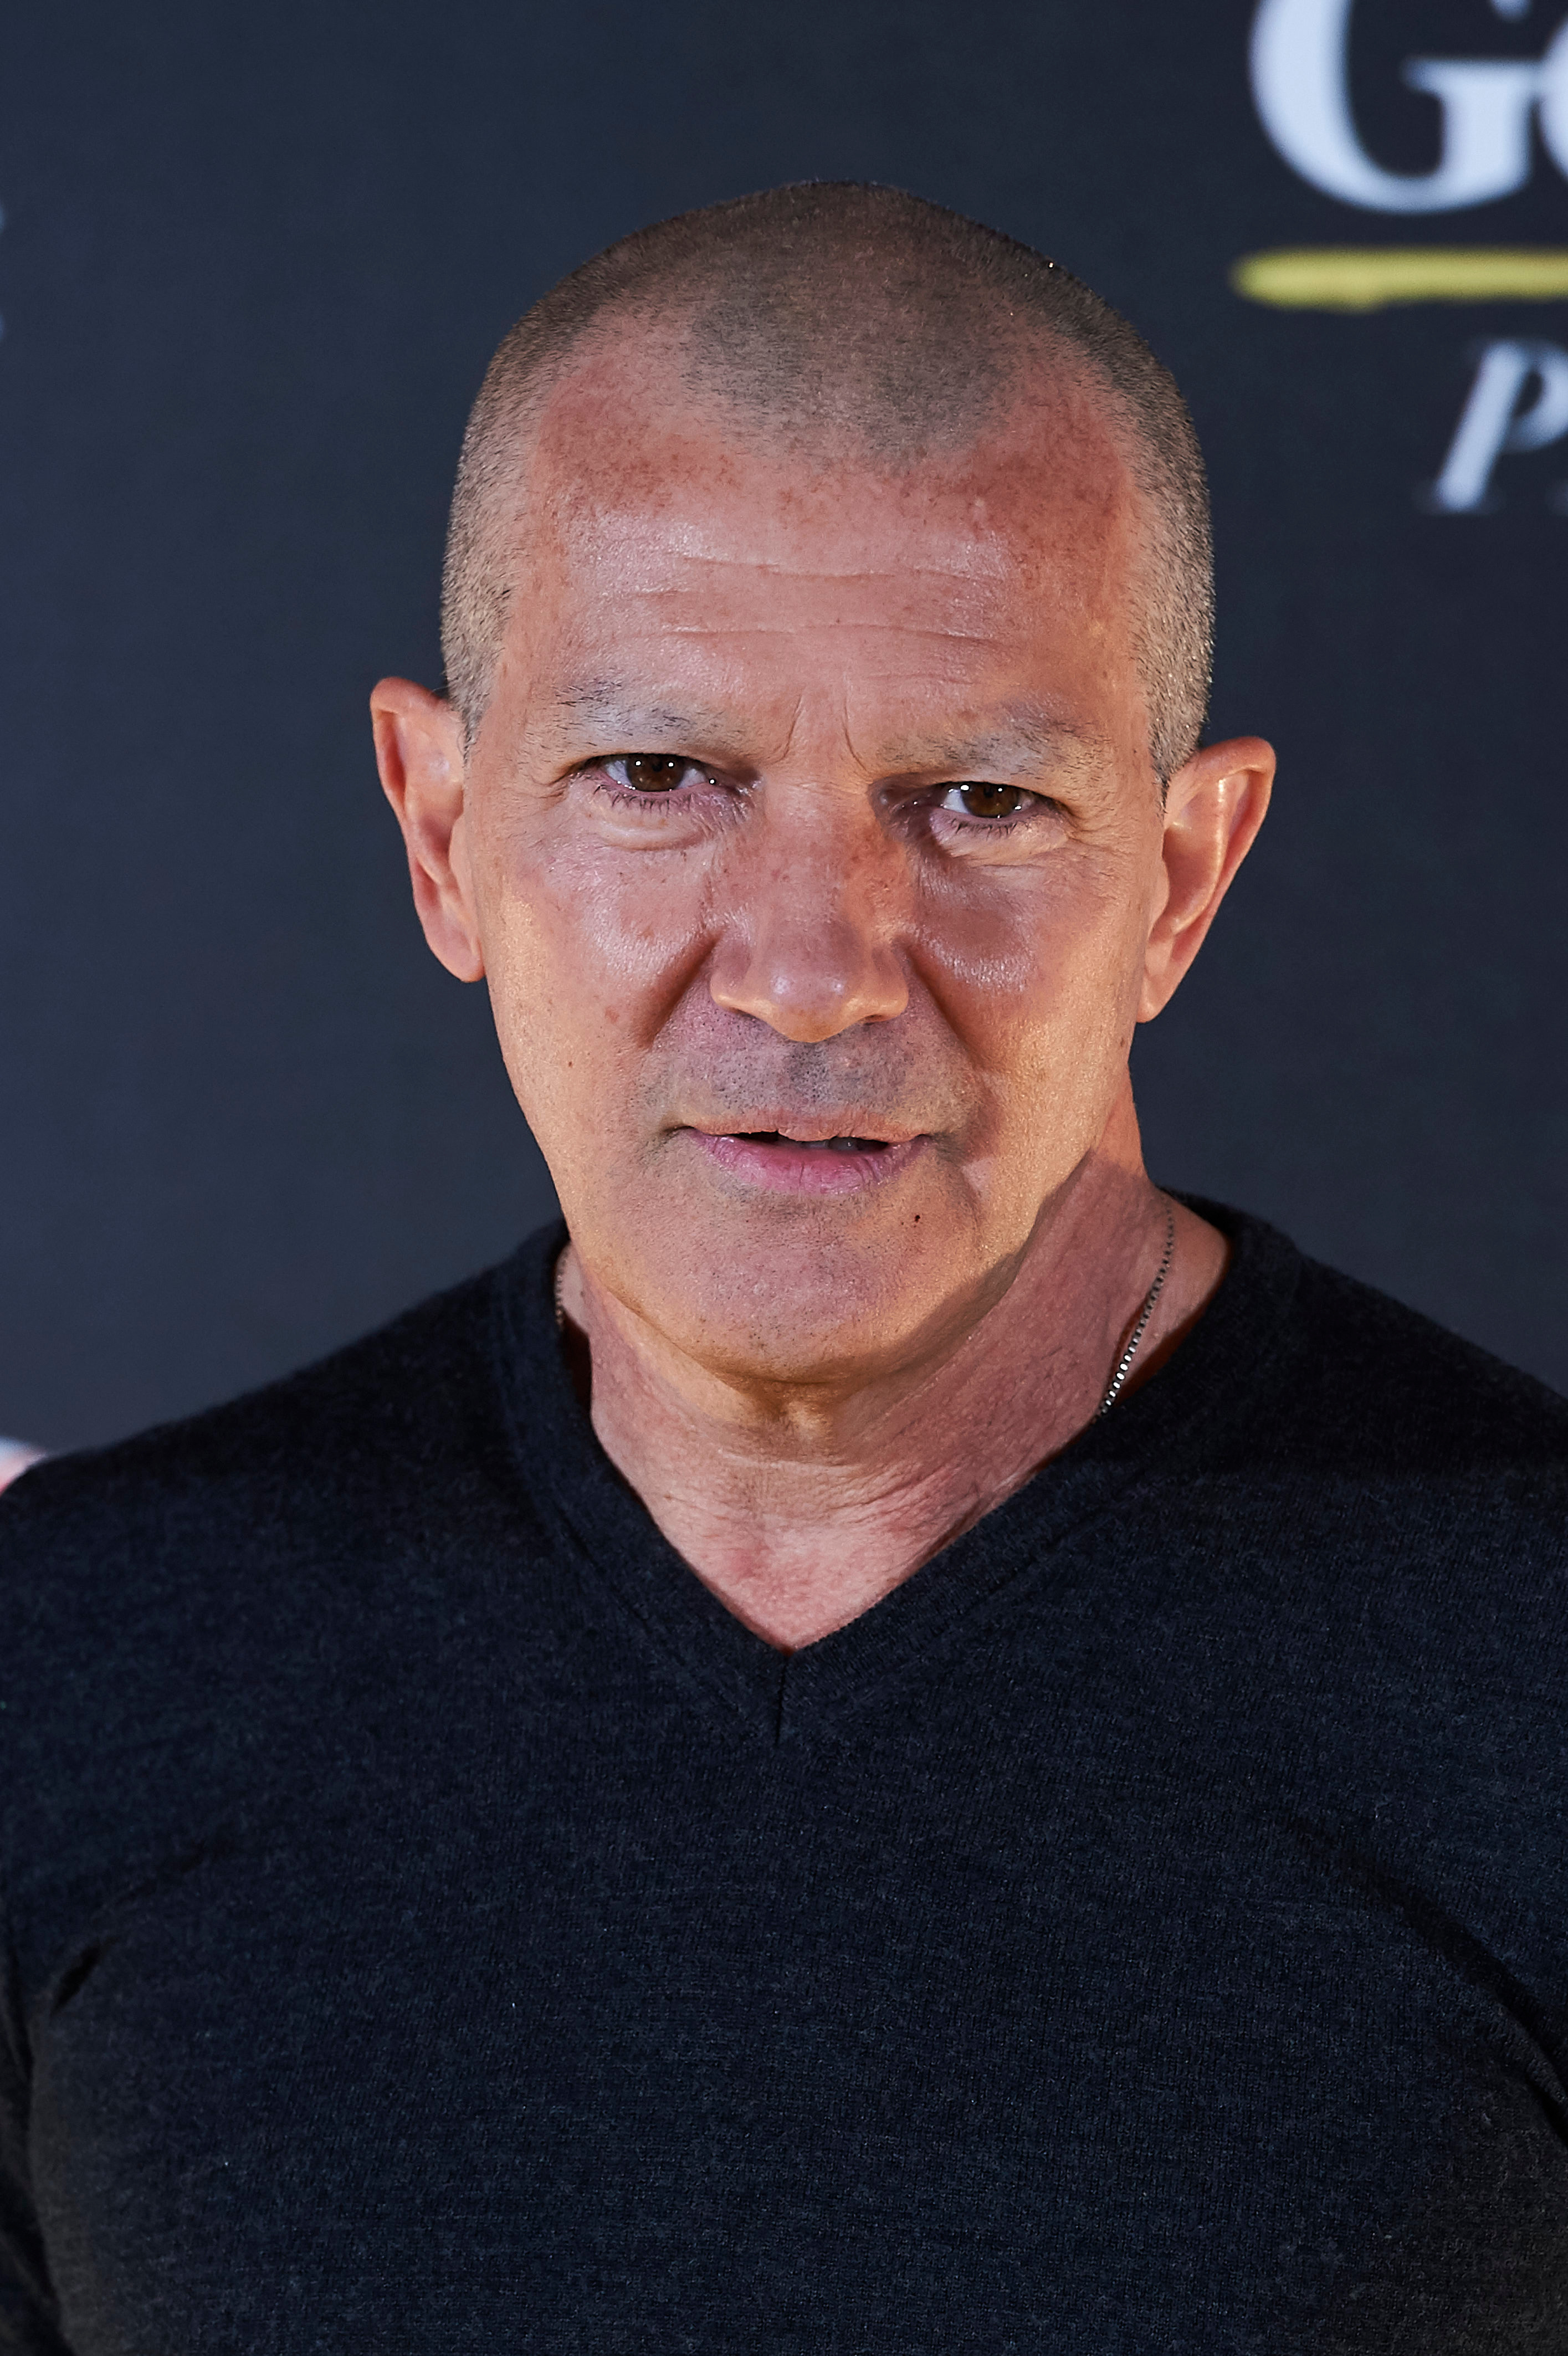 """Antonio Banderas attends the photocall for """"Genius: Picasso"""" in Madrid, Spain, on March 21, 2018."""